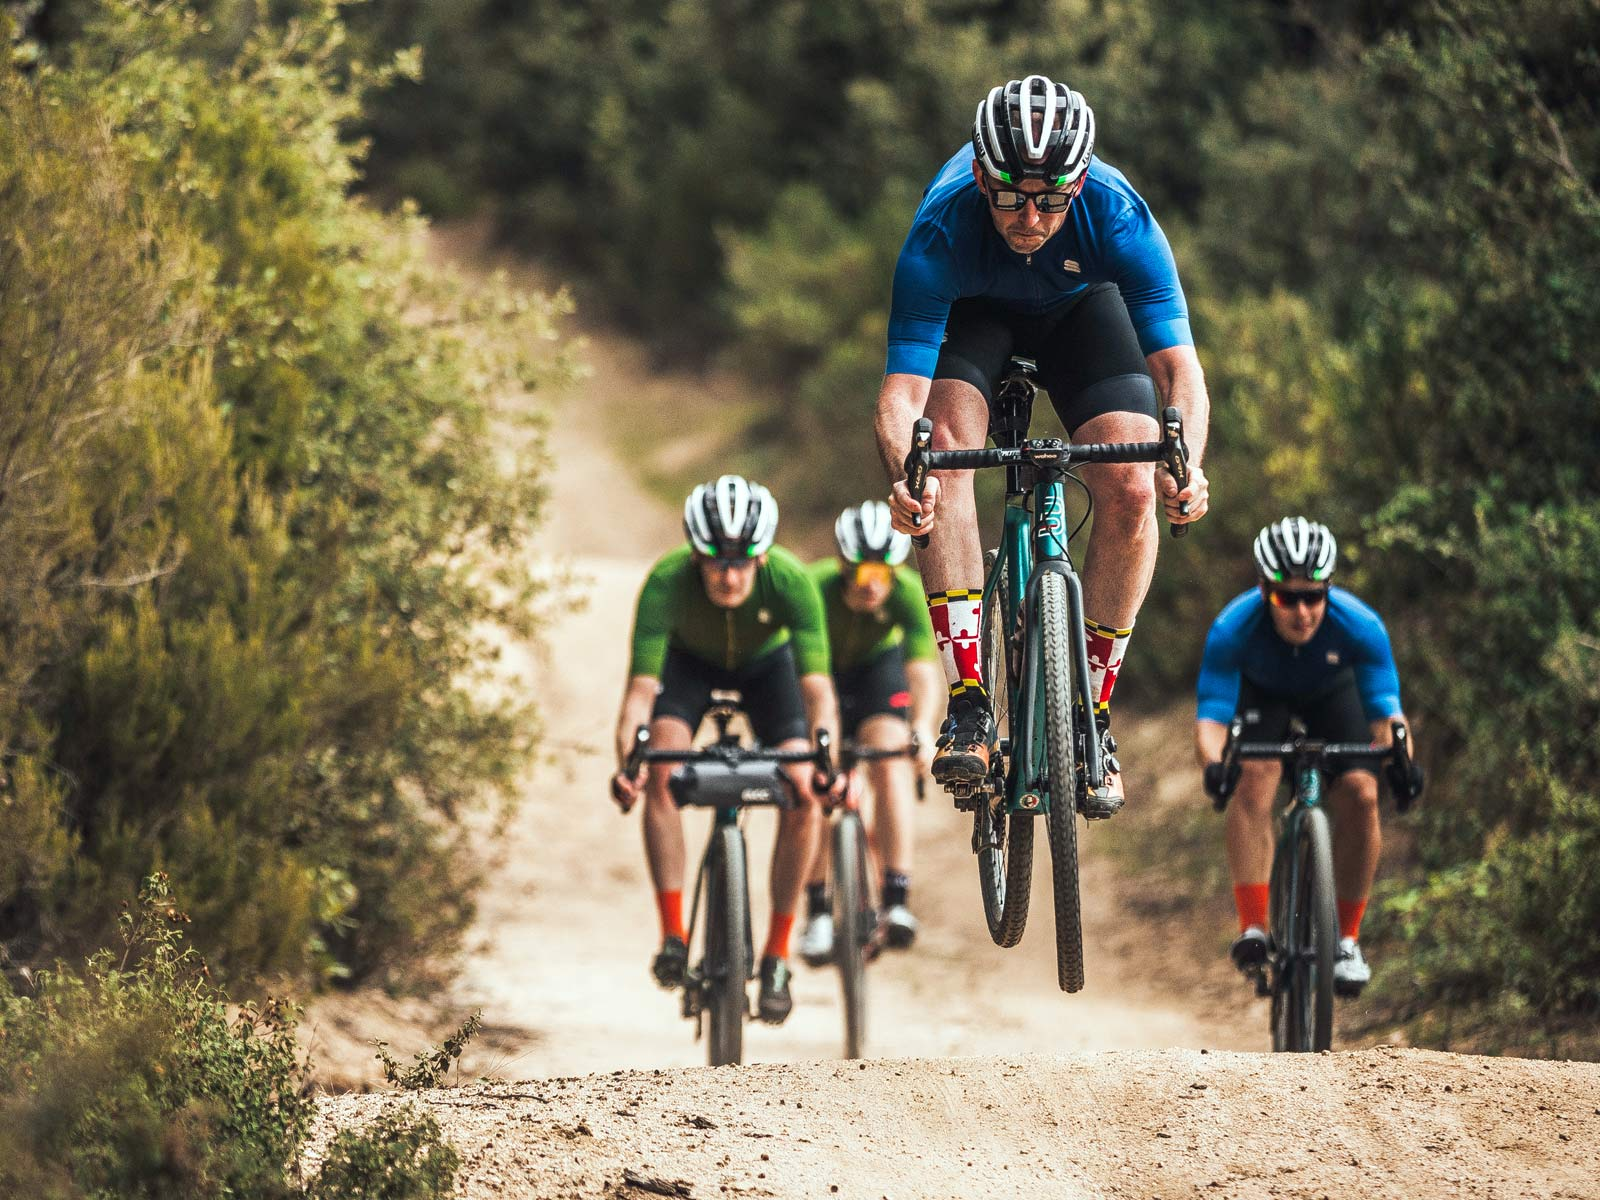 Basso Palta fast carbon gravel road bike - review: road-inspired fast, stiff, made-in-Italy, photo by Javi Echevarria Ruiz, air time